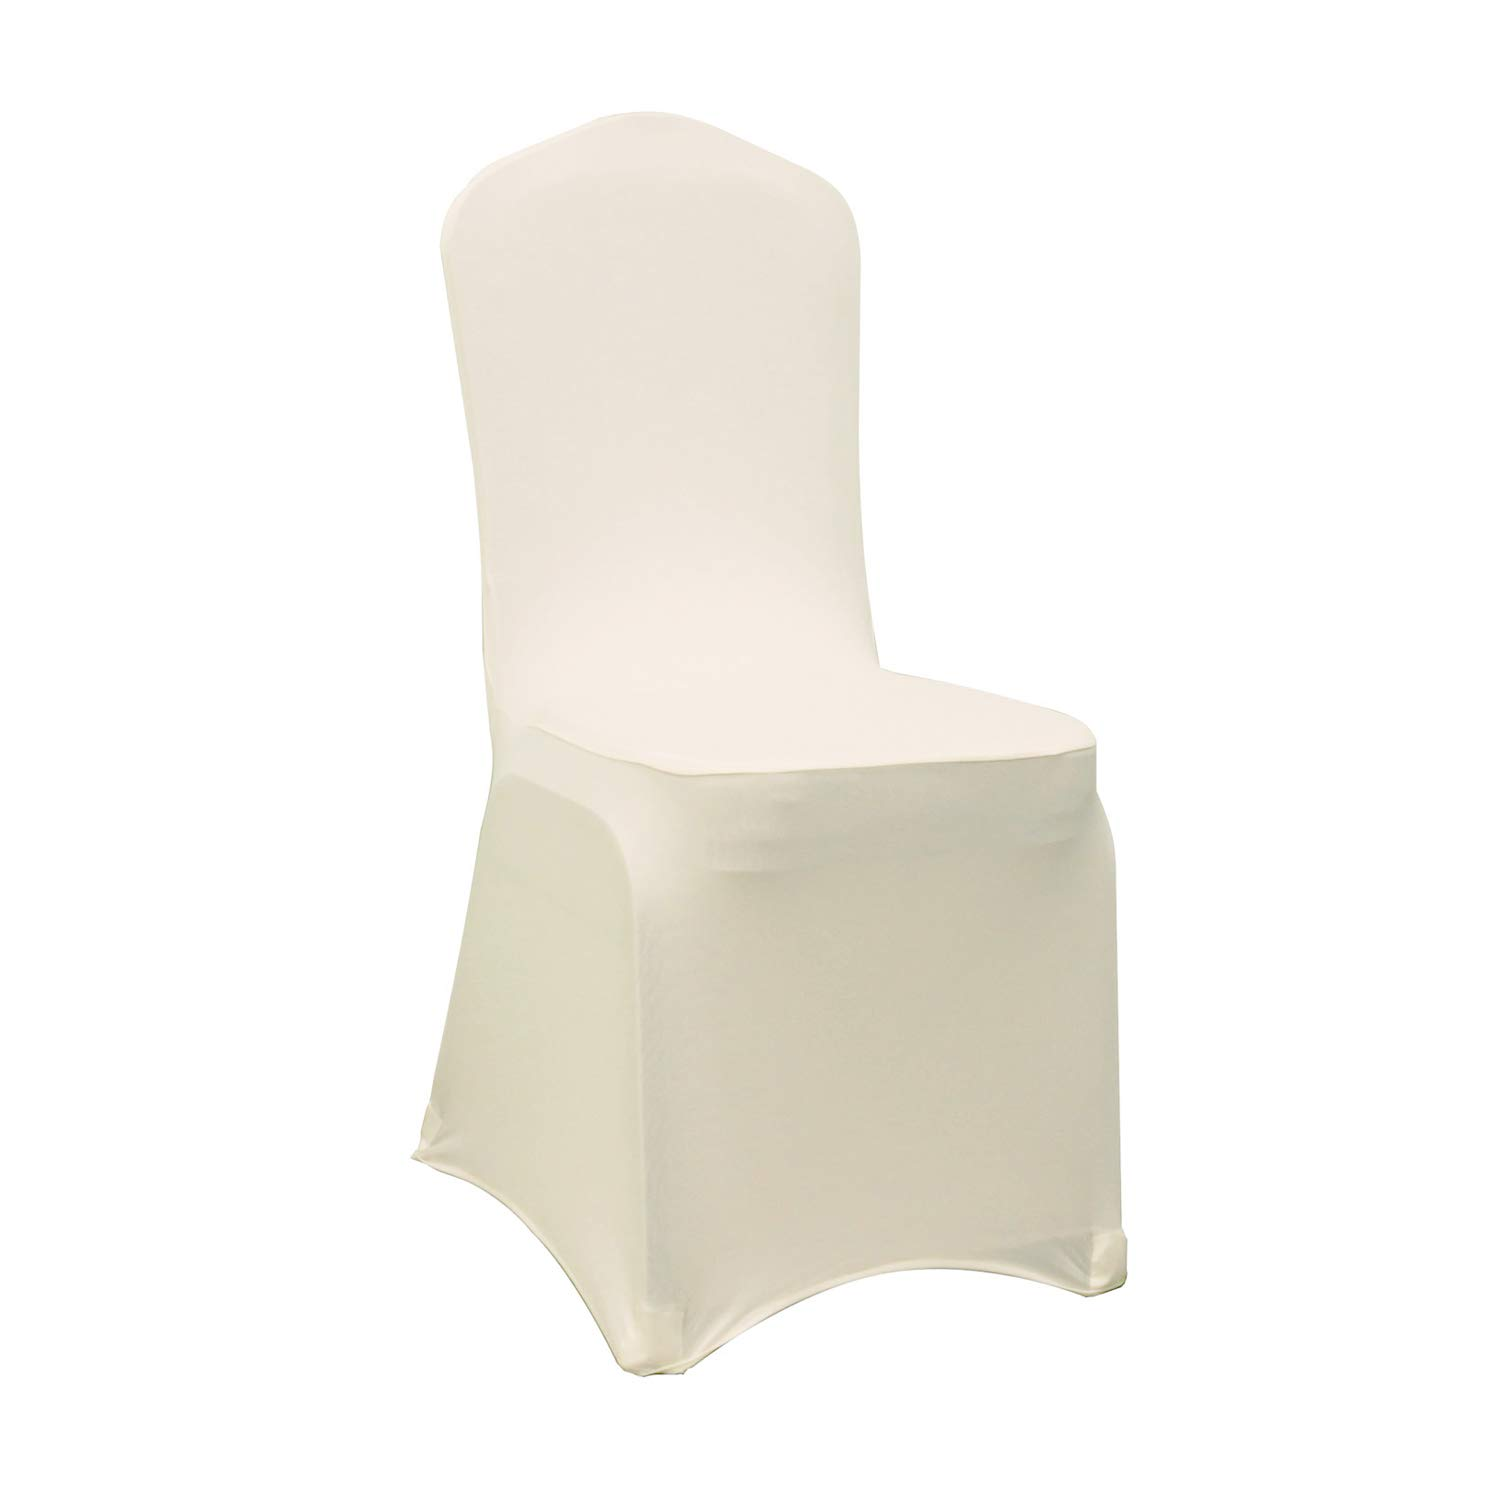 Phenomenal Ivory Stretch Spandex Chair Covers Wedding Universal 50 Pcs Banquet Wedding Party Dining Decoration Scuba Elastic Chair Covers Ivory 50 Caraccident5 Cool Chair Designs And Ideas Caraccident5Info